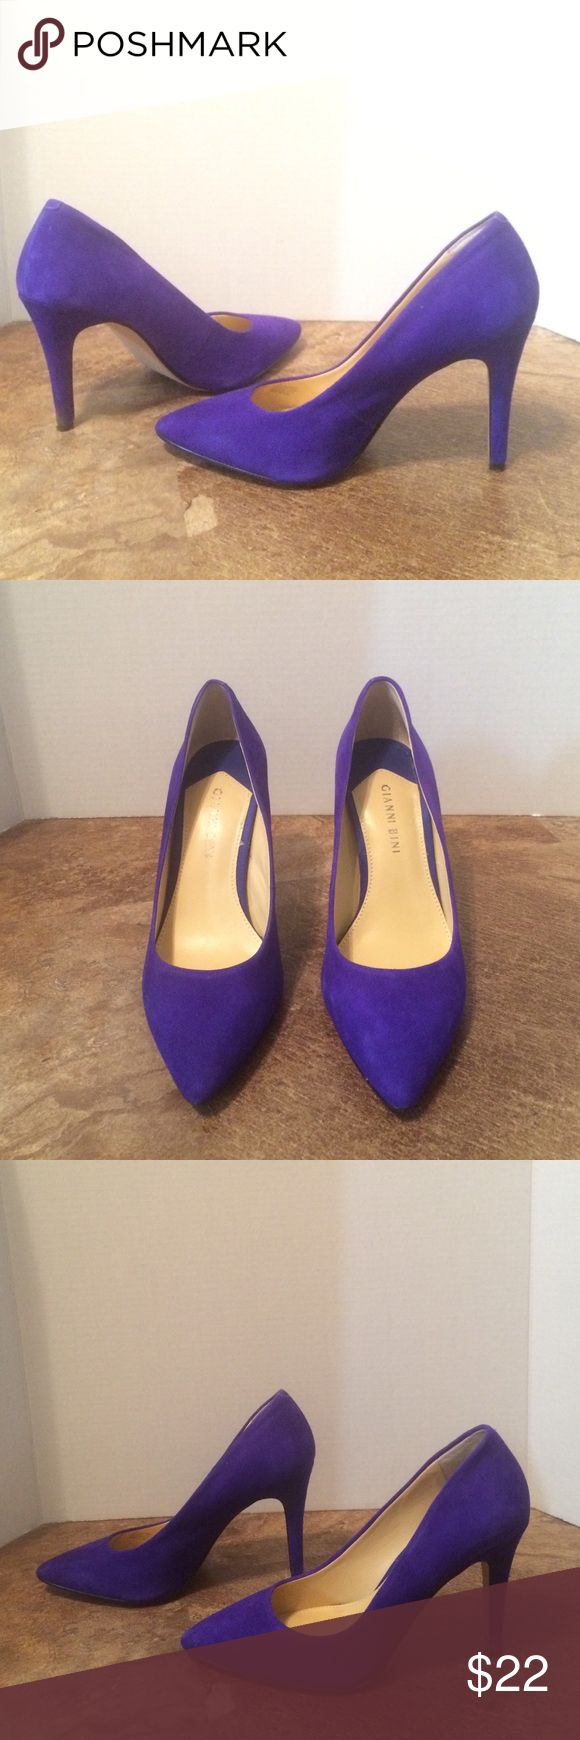 Blue suede pumps These are a pair of rolling blue suede pumps. They have a very vibrant color with a sophisticated pointy toe. 3 inch heel w/ no platform Gianni Bini Shoes Heels